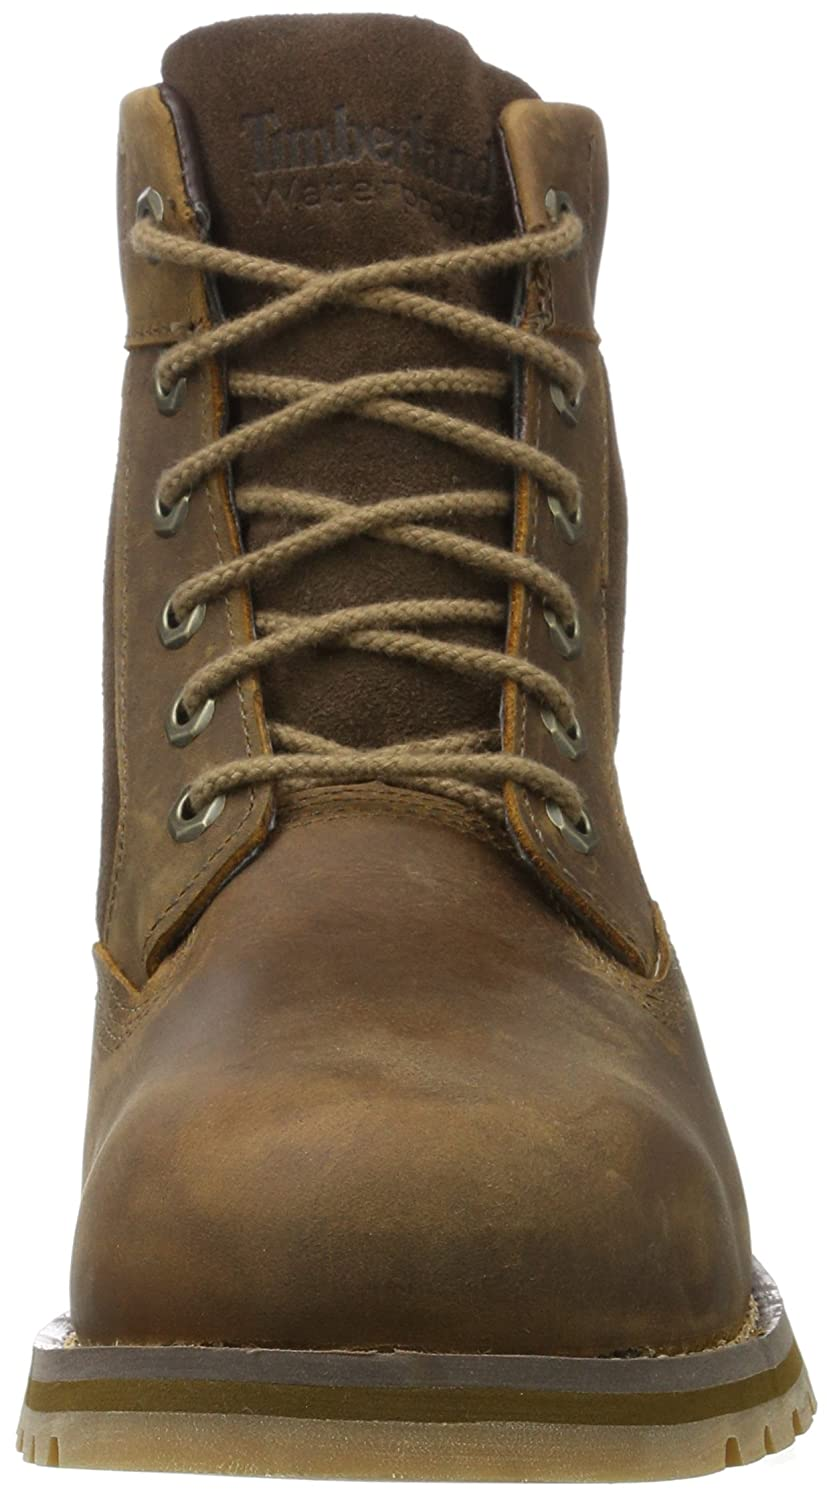 Les Earthkeepers Hommes Timberland Larchmont 6 Bottes De Pouce Lo1hvkDtN1